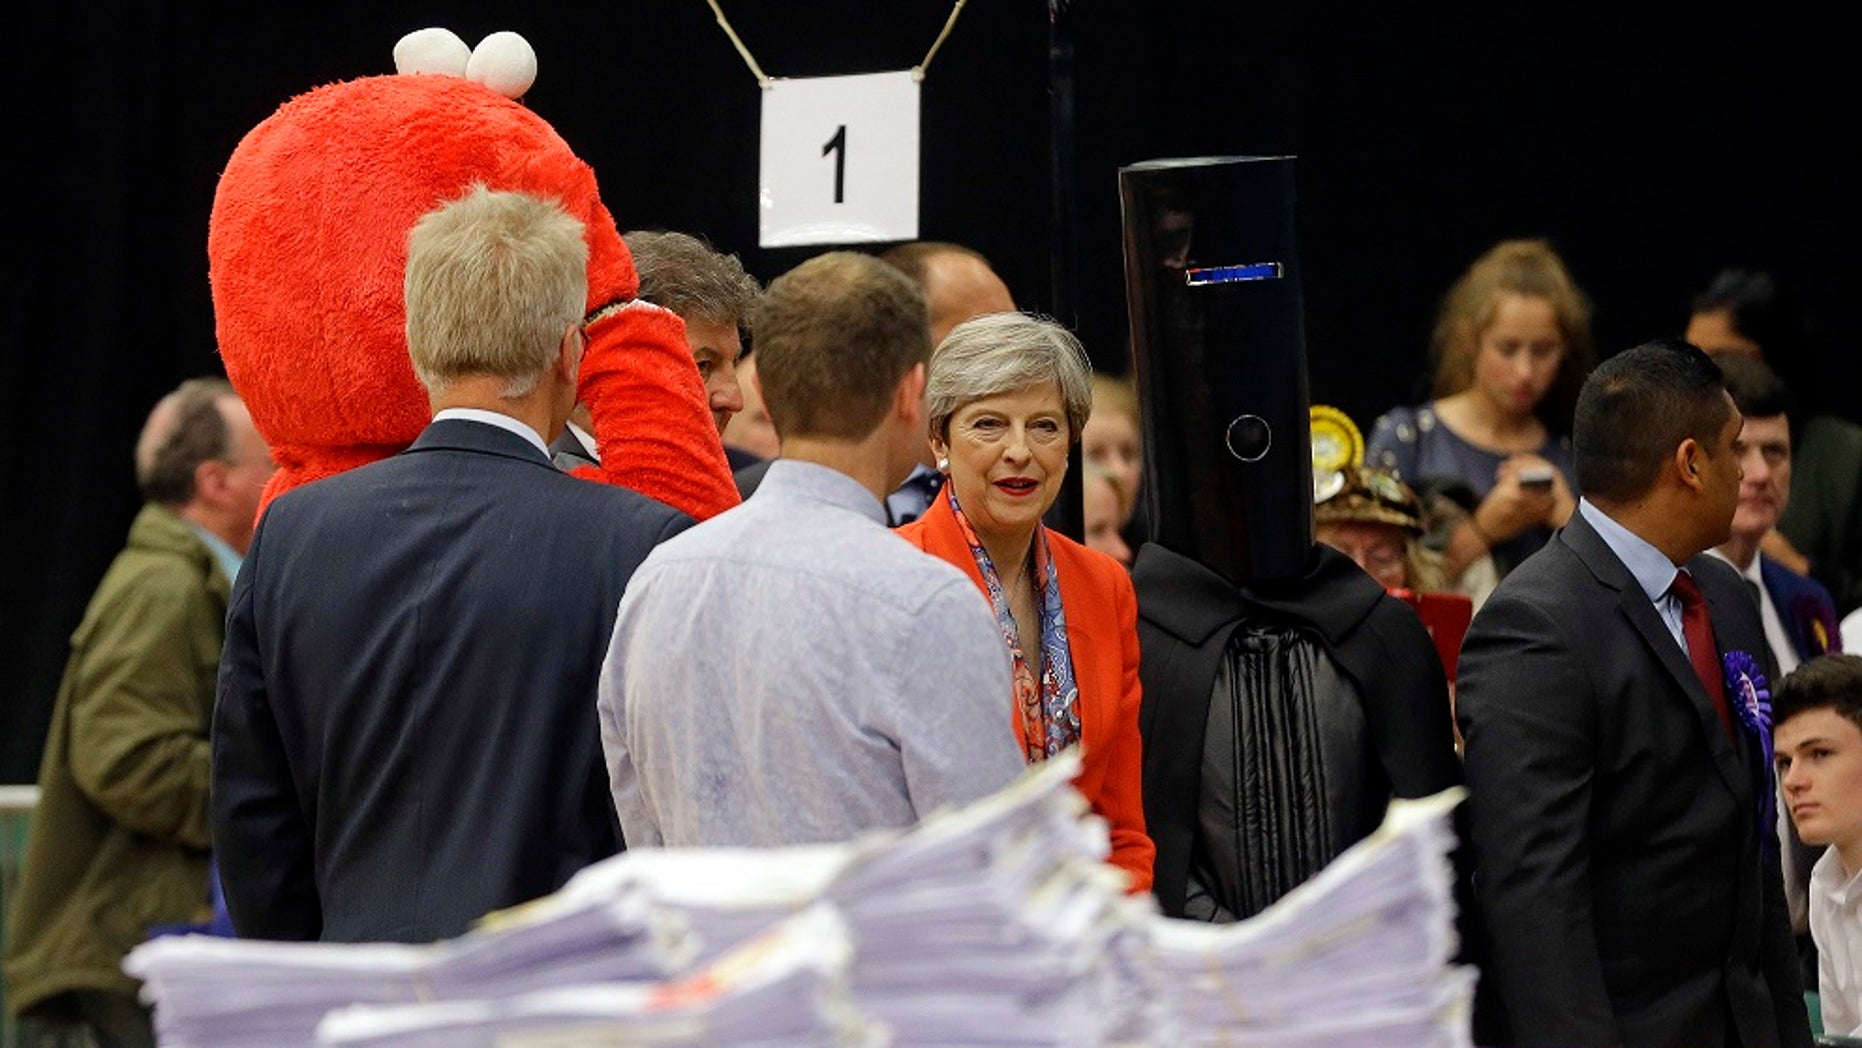 """Lord Buckethead, who ran on a platform of powerful but """"not entirely stable leadership,"""" received 249 votes in Britain's general election."""